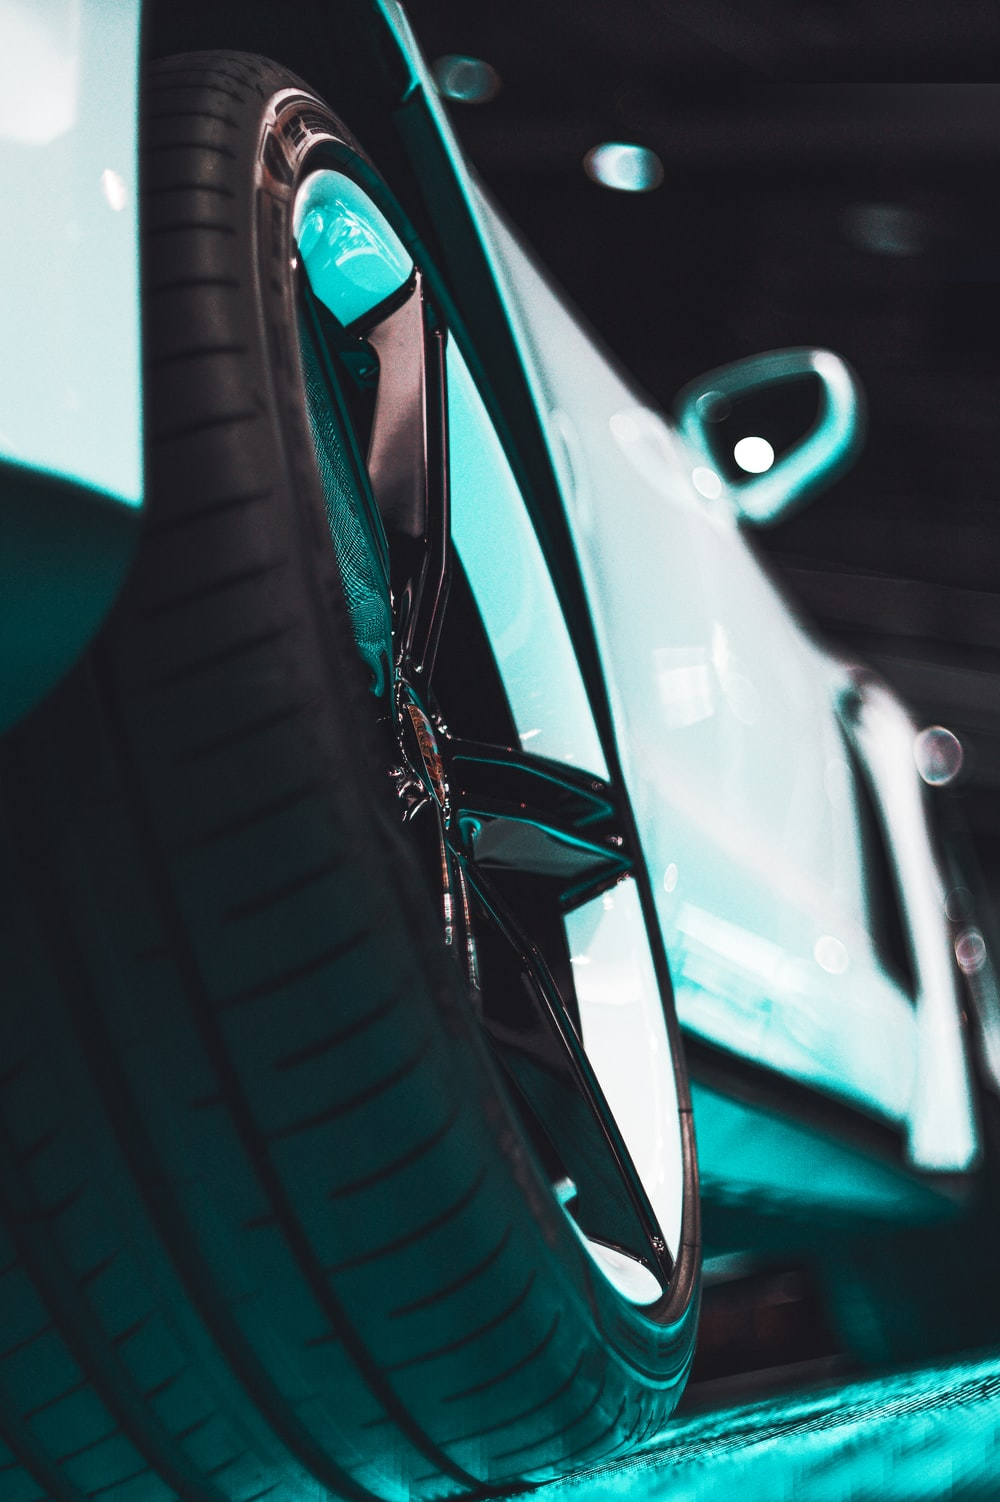 close view of vehicle wheel and tire